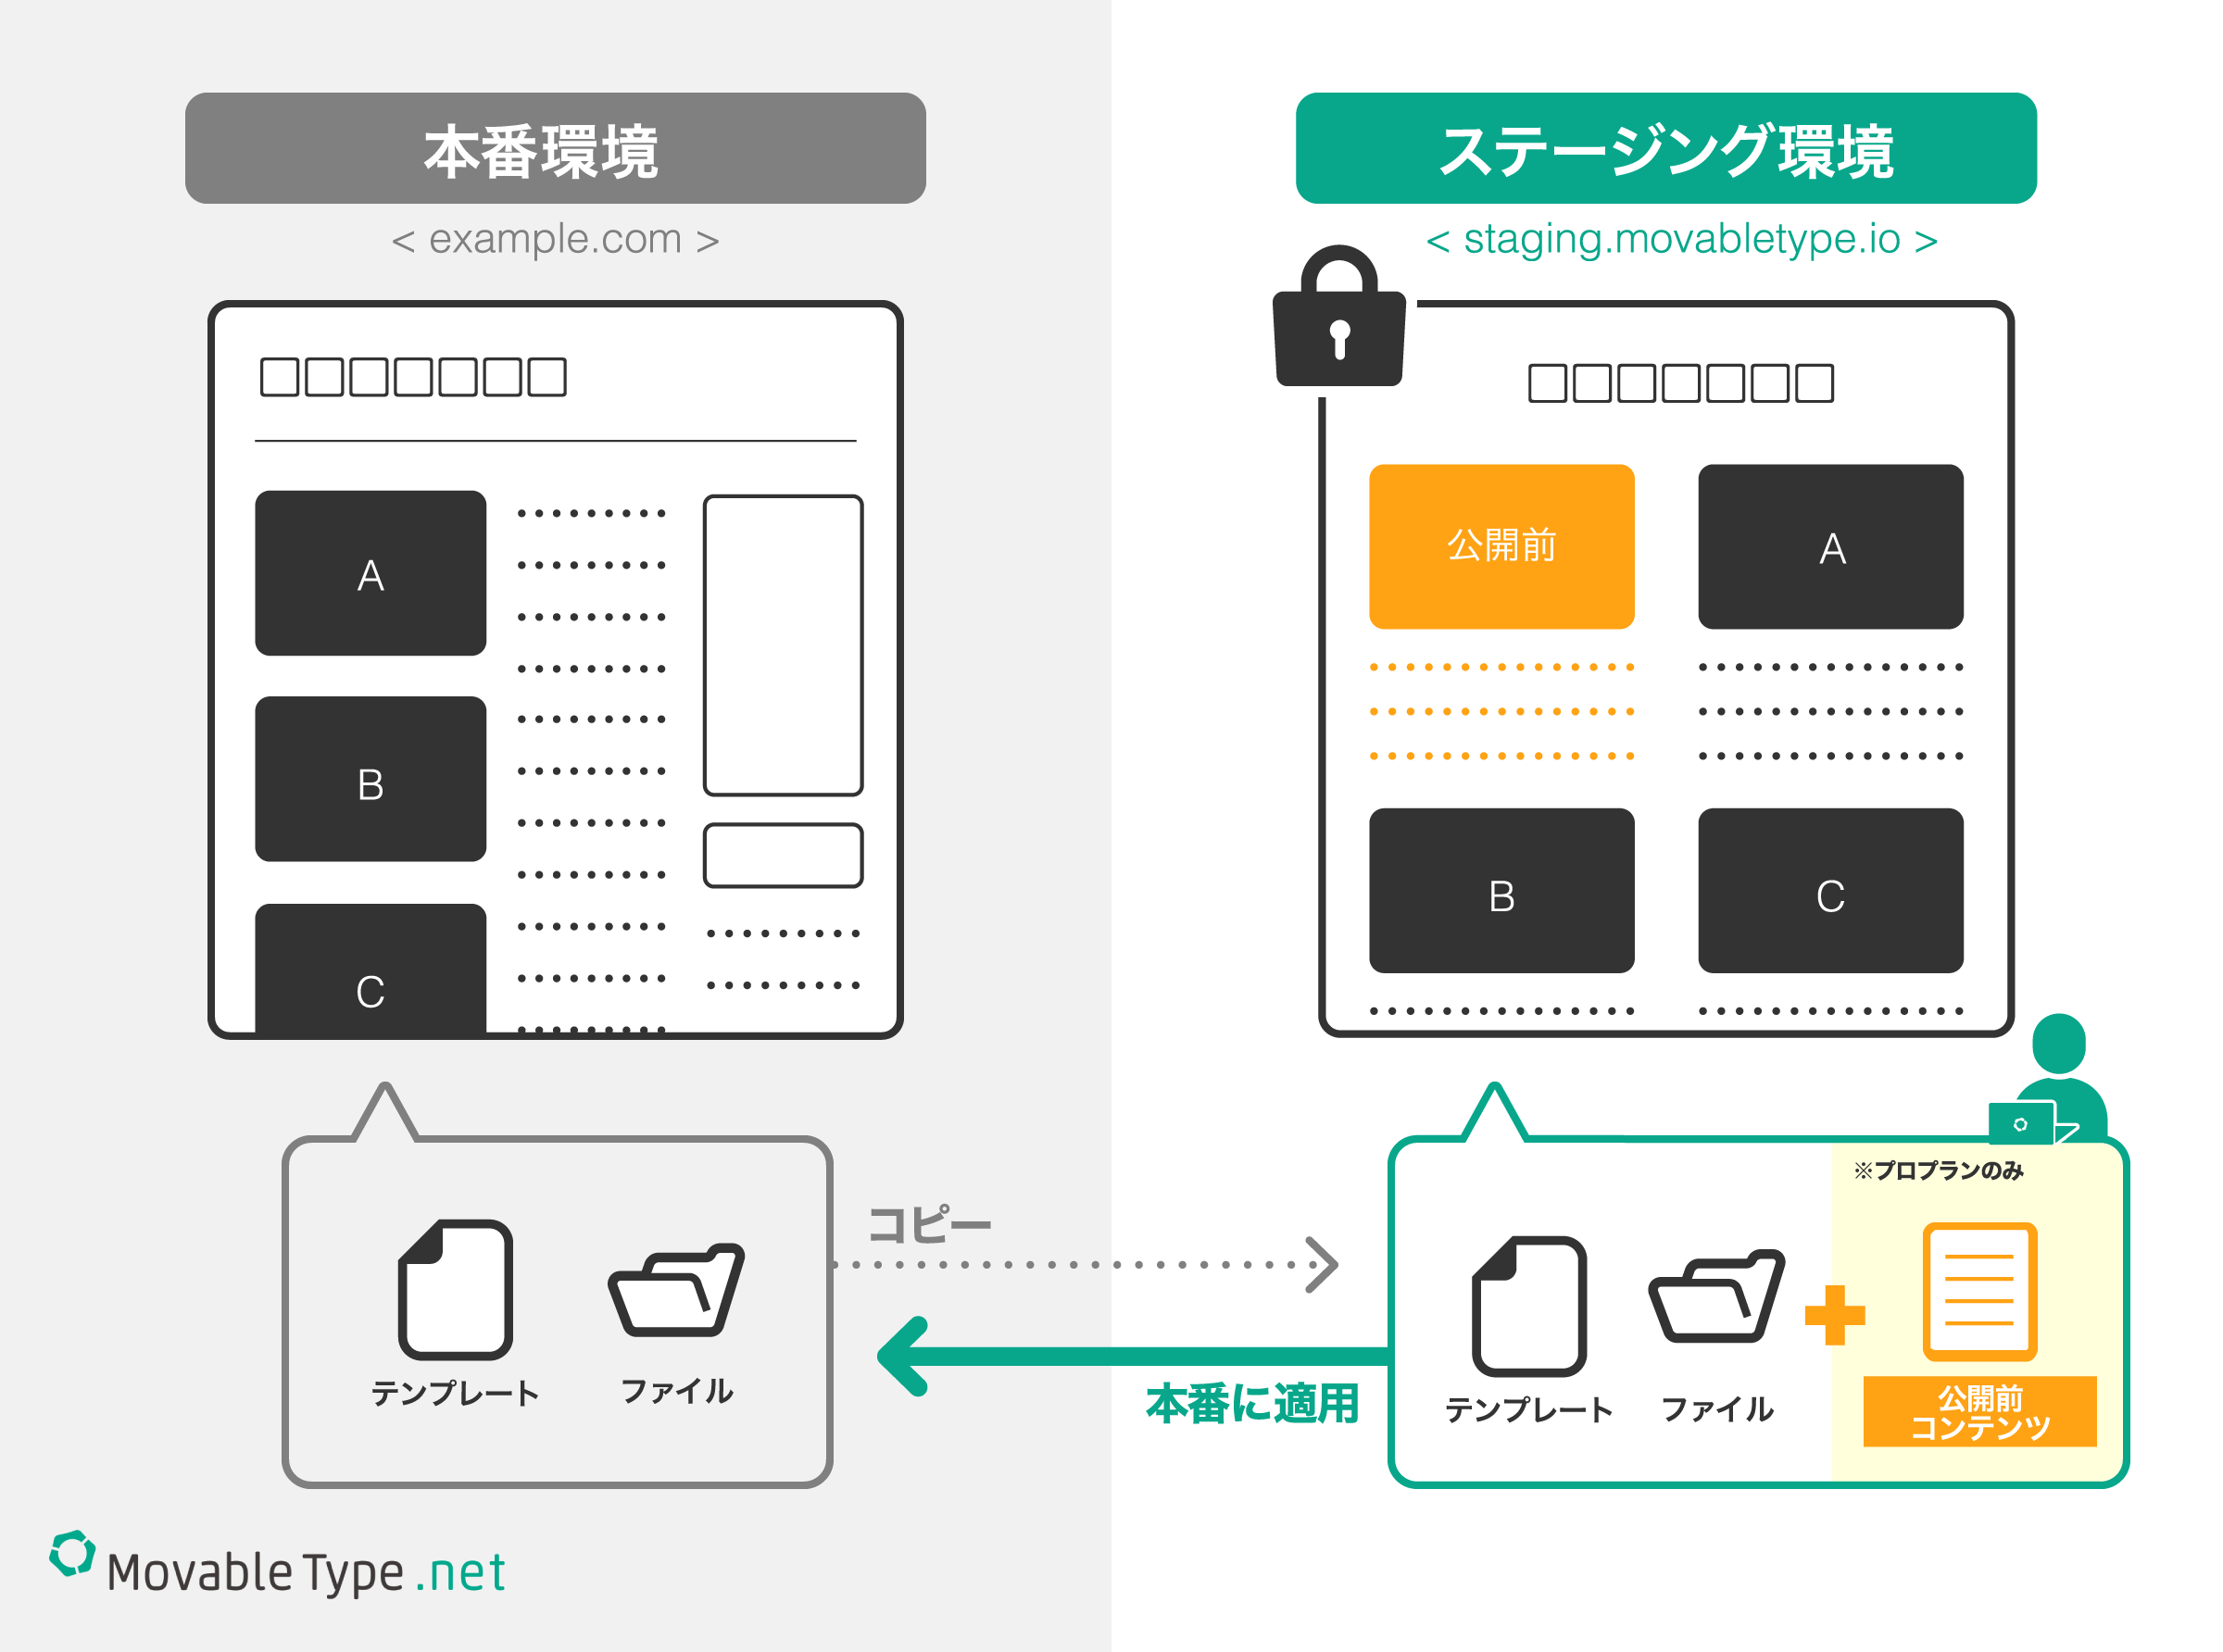 MovableType.net ステージング機能追加